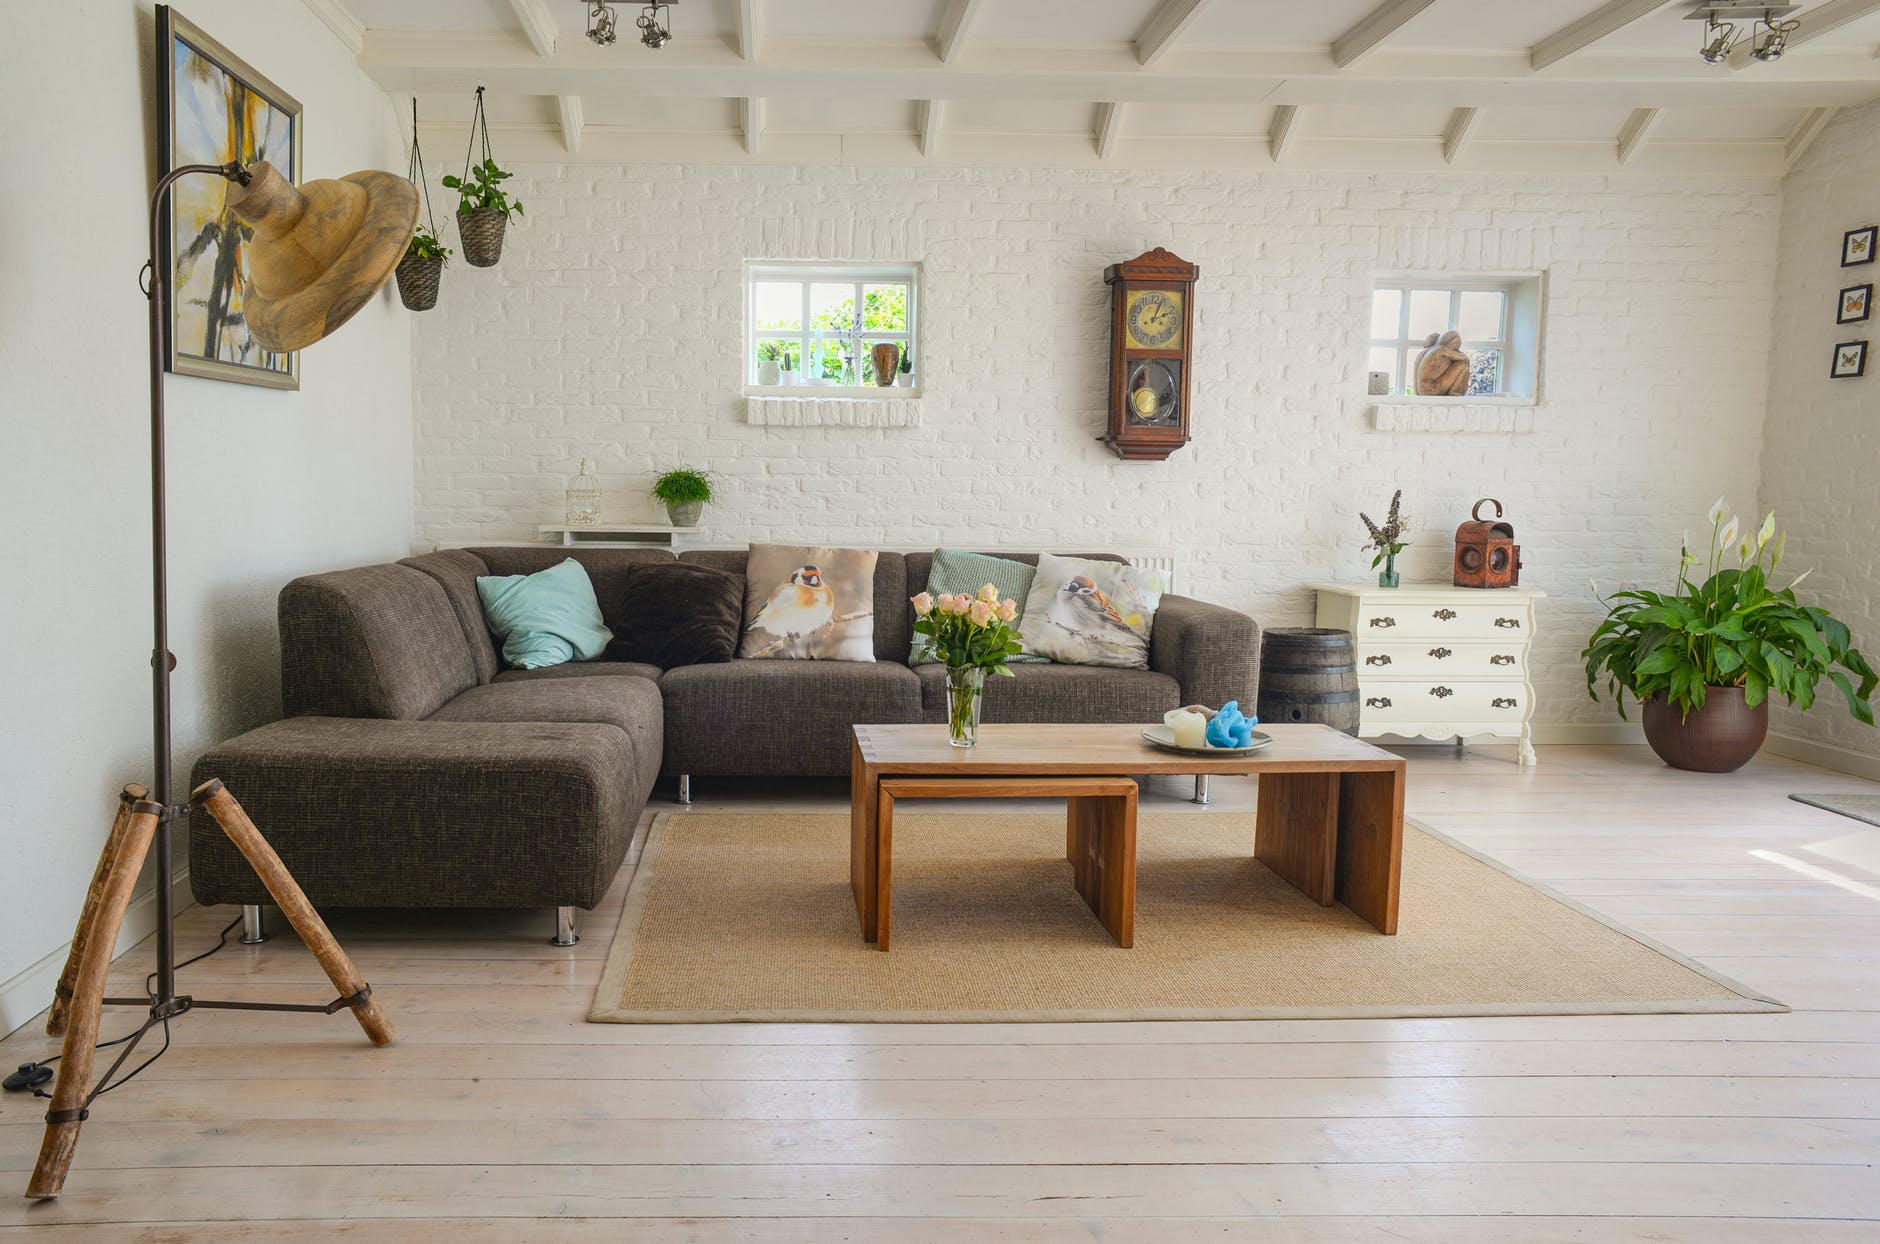 A living room decorated in white paint, with a L-shape grey sofa in the left corner with some pillows that have birds on them. There are some hanging plants above the sofa, and some floor plants. There is some small windows, coffee table, lamp, drawers and a clock on the wall.